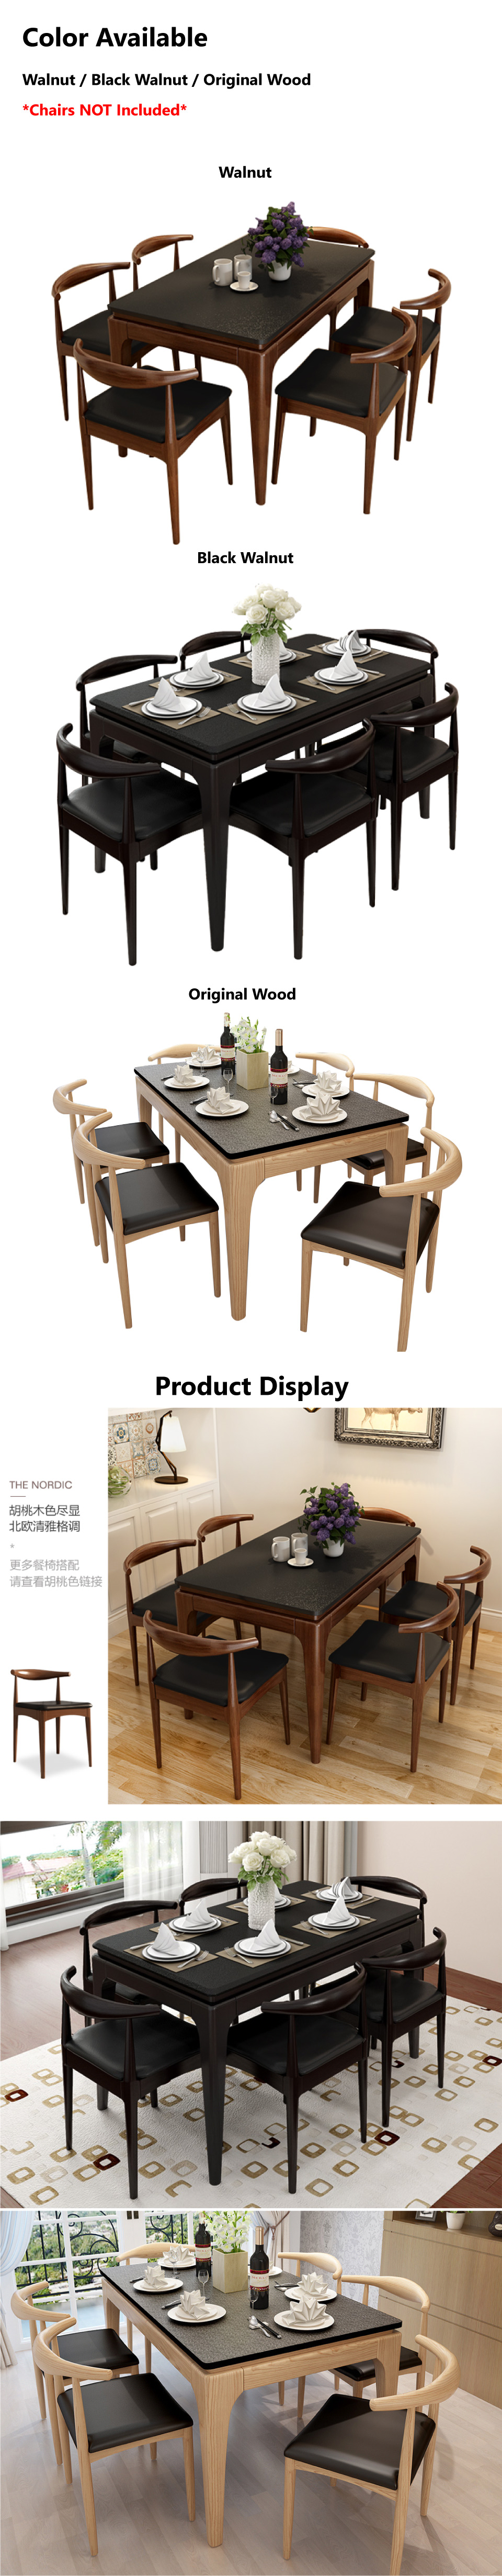 Miraculous Jiji Lava Fire Stone Ash Wood Dining Table Table Only Free Installation Tables Kitchen Furniture 1 Year Local Warranty Sg Download Free Architecture Designs Rallybritishbridgeorg